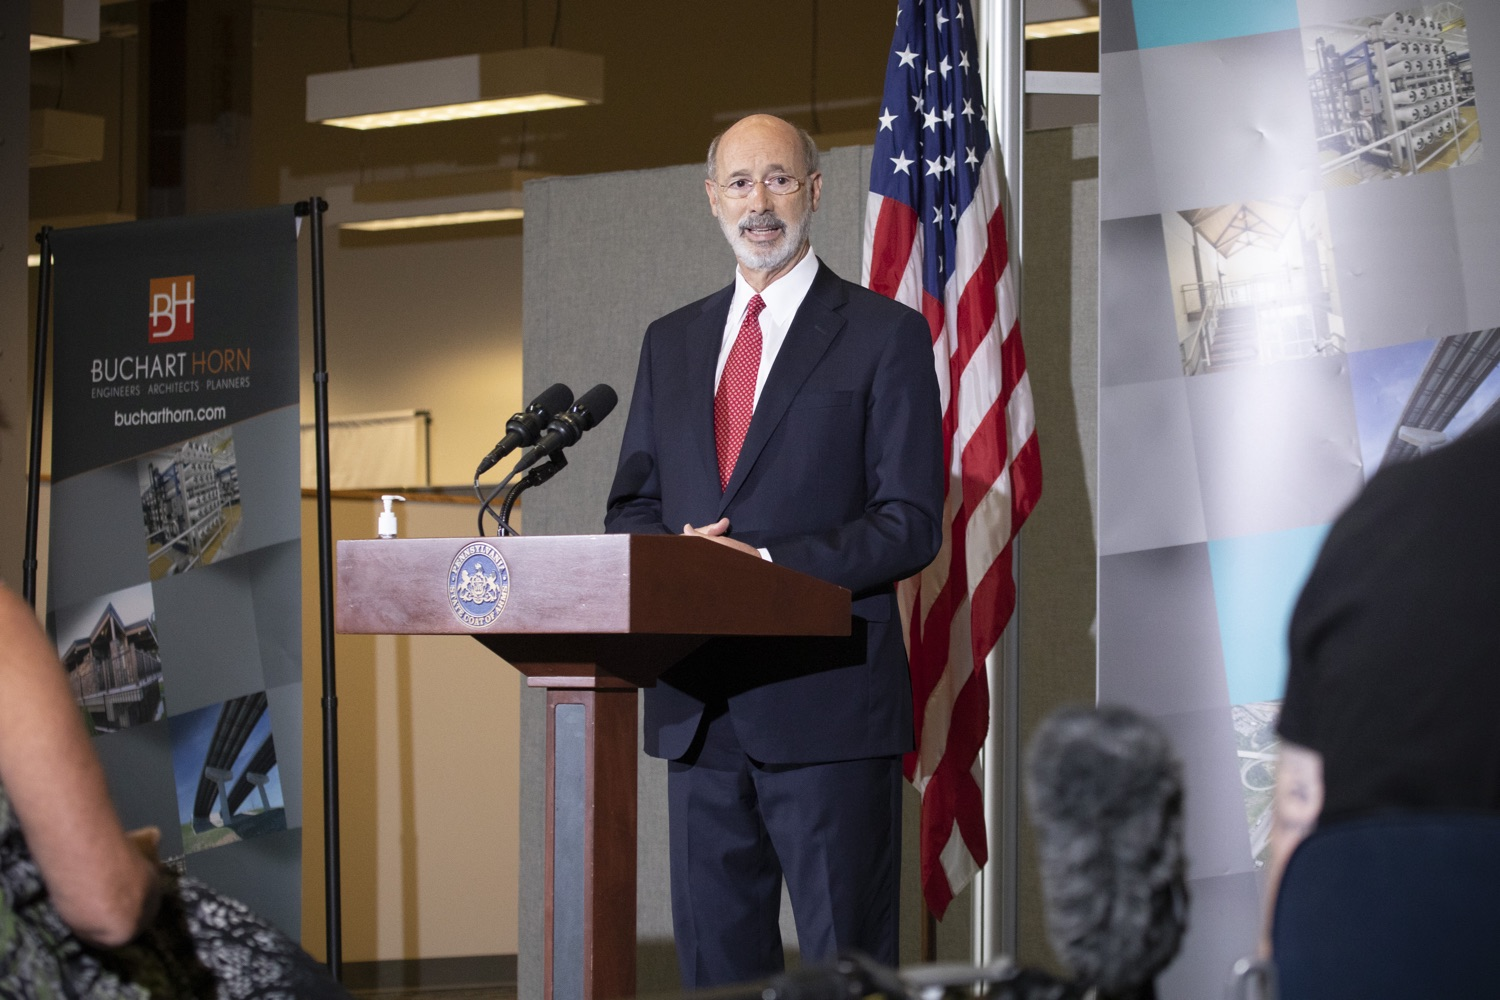 "<a href=""https://filesource.wostreaming.net/commonwealthofpa/photo/18250_gov_covidFunding_dz_017.jpg"" target=""_blank"">⇣ Download Photo<br></a>Pennsylvania Governor Tom Wolf speaking to the press.  As small businesses continue to feel an economic impact of the COVID-19 public health crisis, Governor Tom Wolf today called on the General Assembly to provide additional funding to support these businesses. The governor was joined by the York County Economic Alliance, local elected officials and business advocates.  York, PA  September 10, 2020"